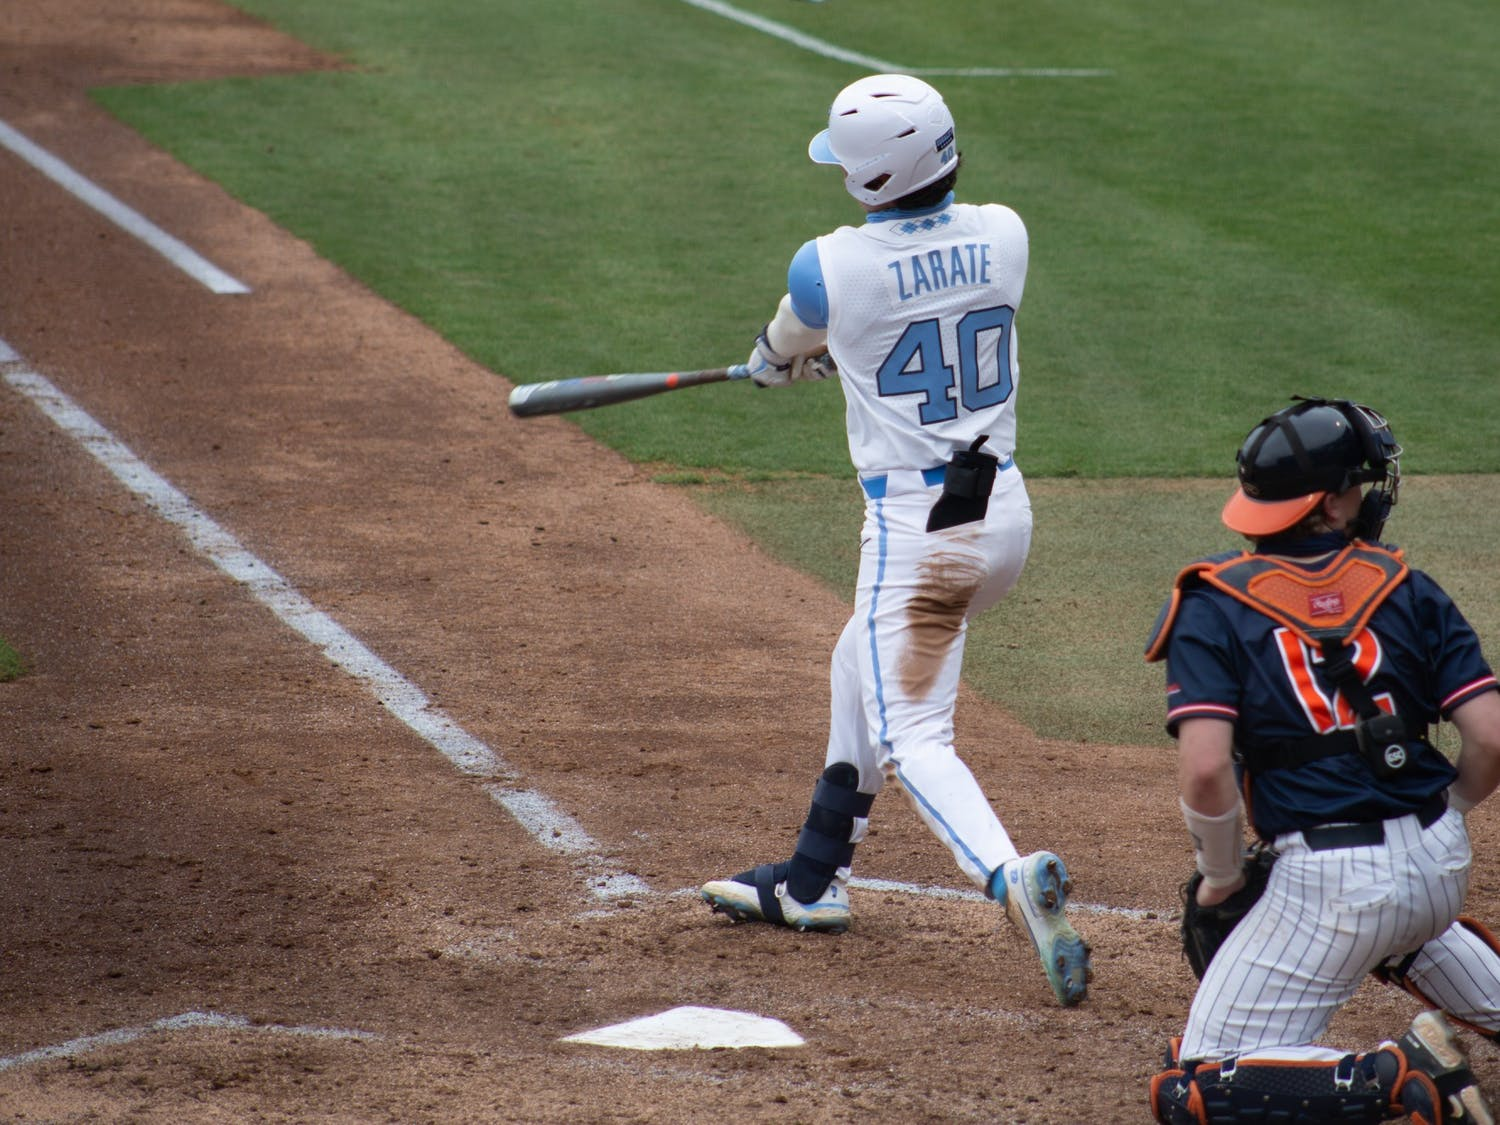 Redshirt sophomore outfielder Angel Zarate (40) goes up to bat in a game against University of Virginia on Saturday, Feb. 27, 2021 at Boshamer Stadium. The Tar Heels beat the Cavaliers 2-1.